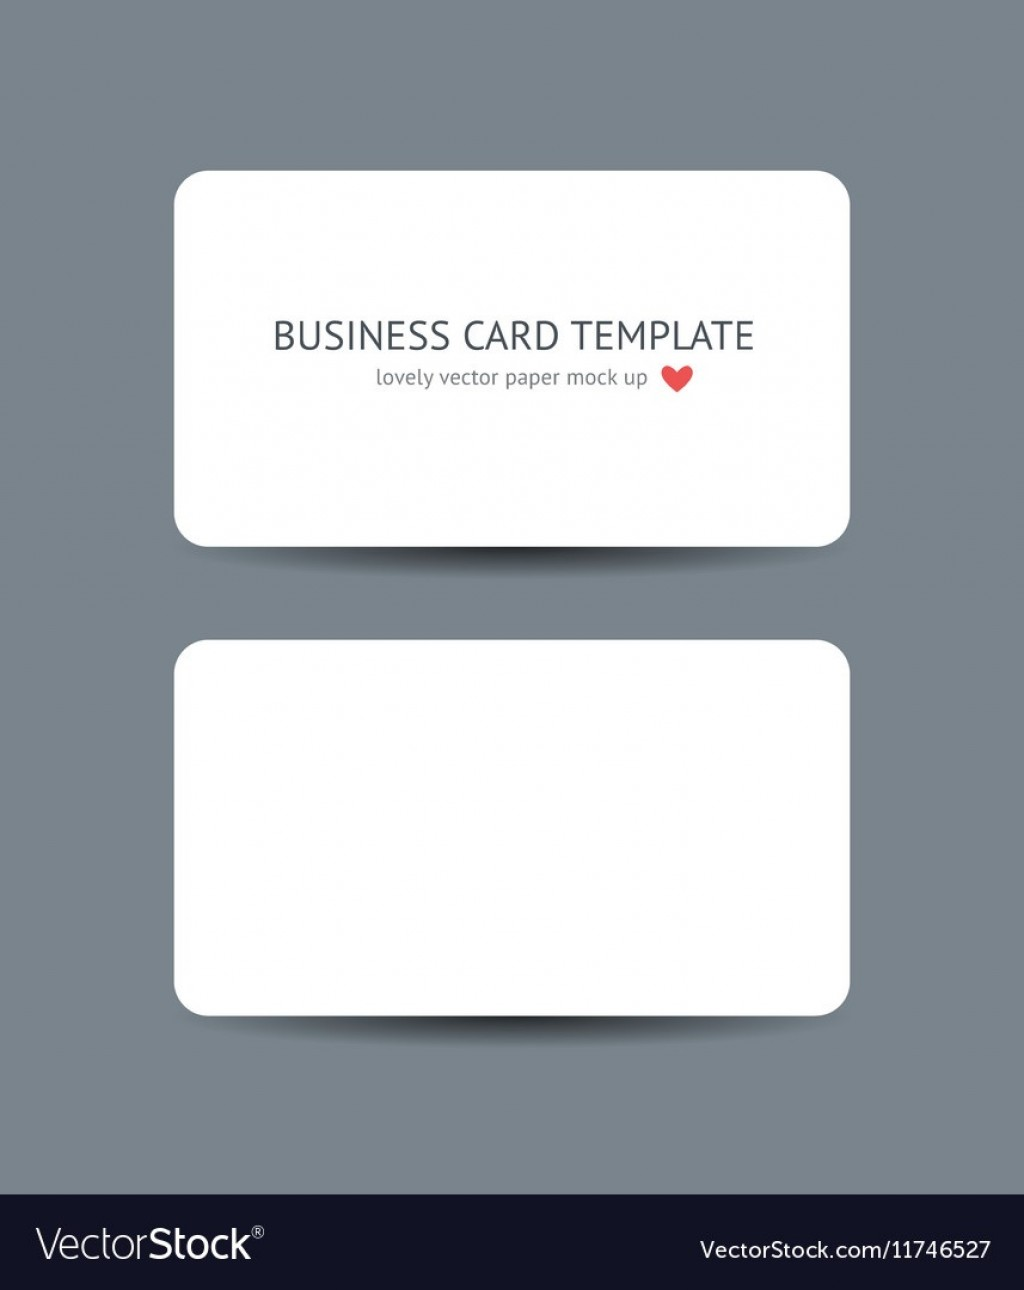 005 Awful Busines Card Blank Template Design  Download FreeLarge